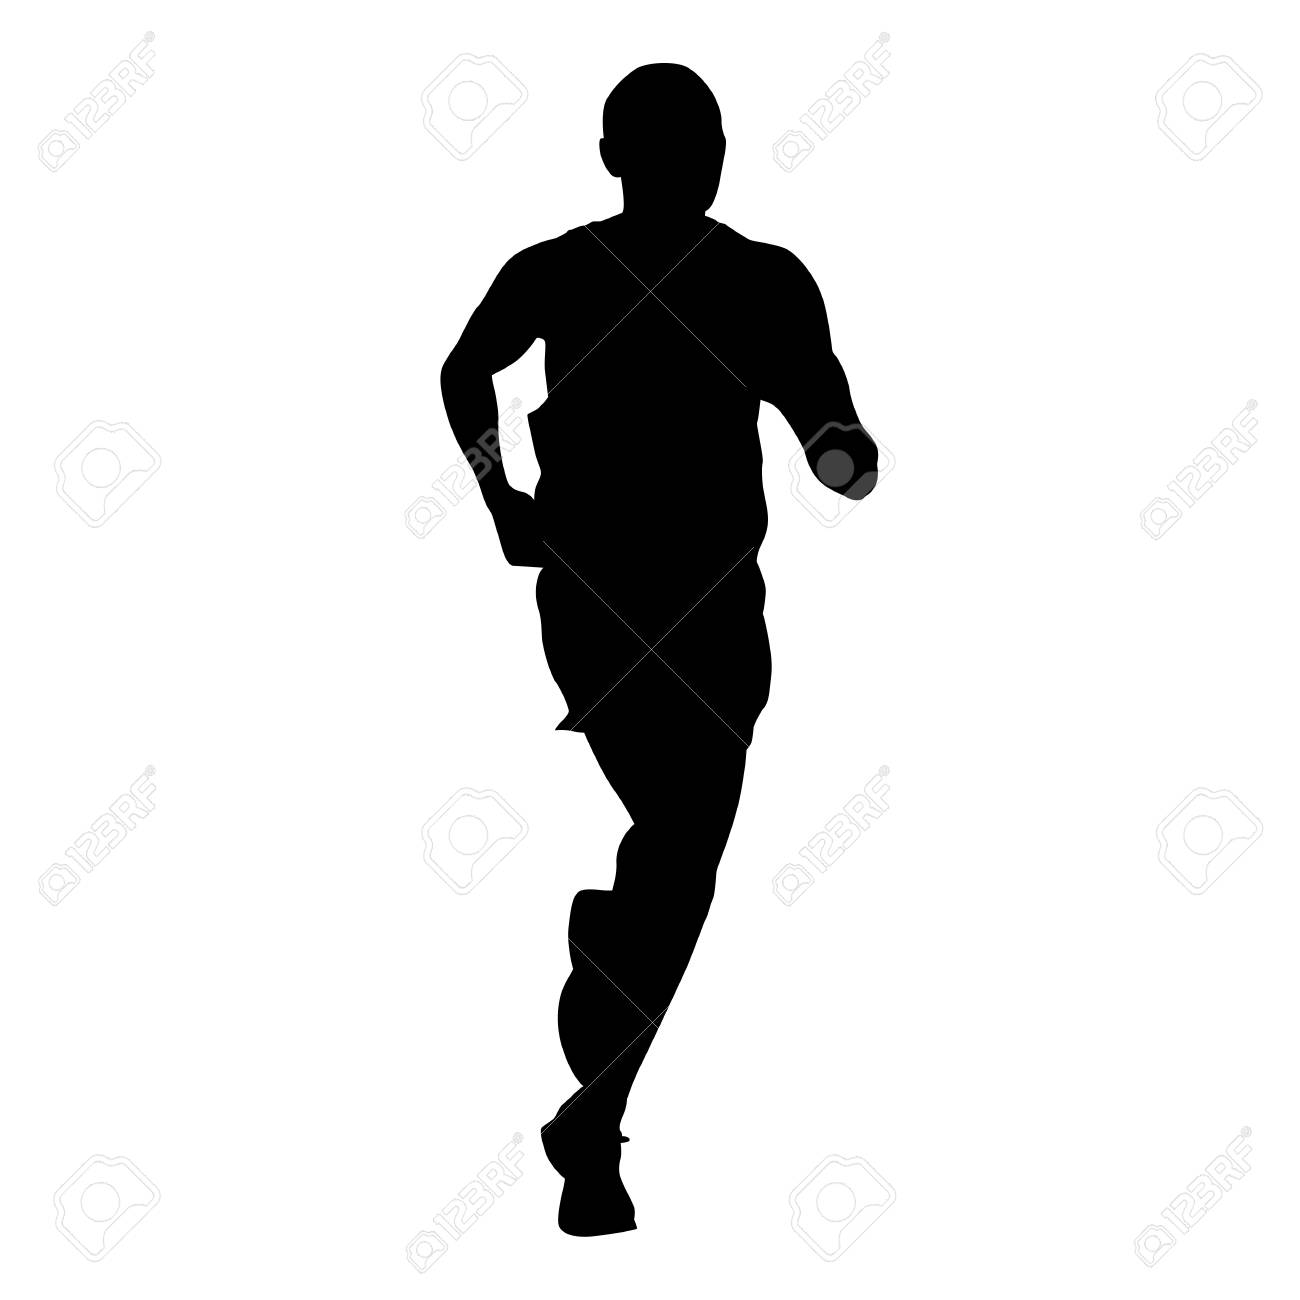 running man, athlete vector silhouette royalty free cliparts, vectors, and  stock illustration. image 69467712.  123rf